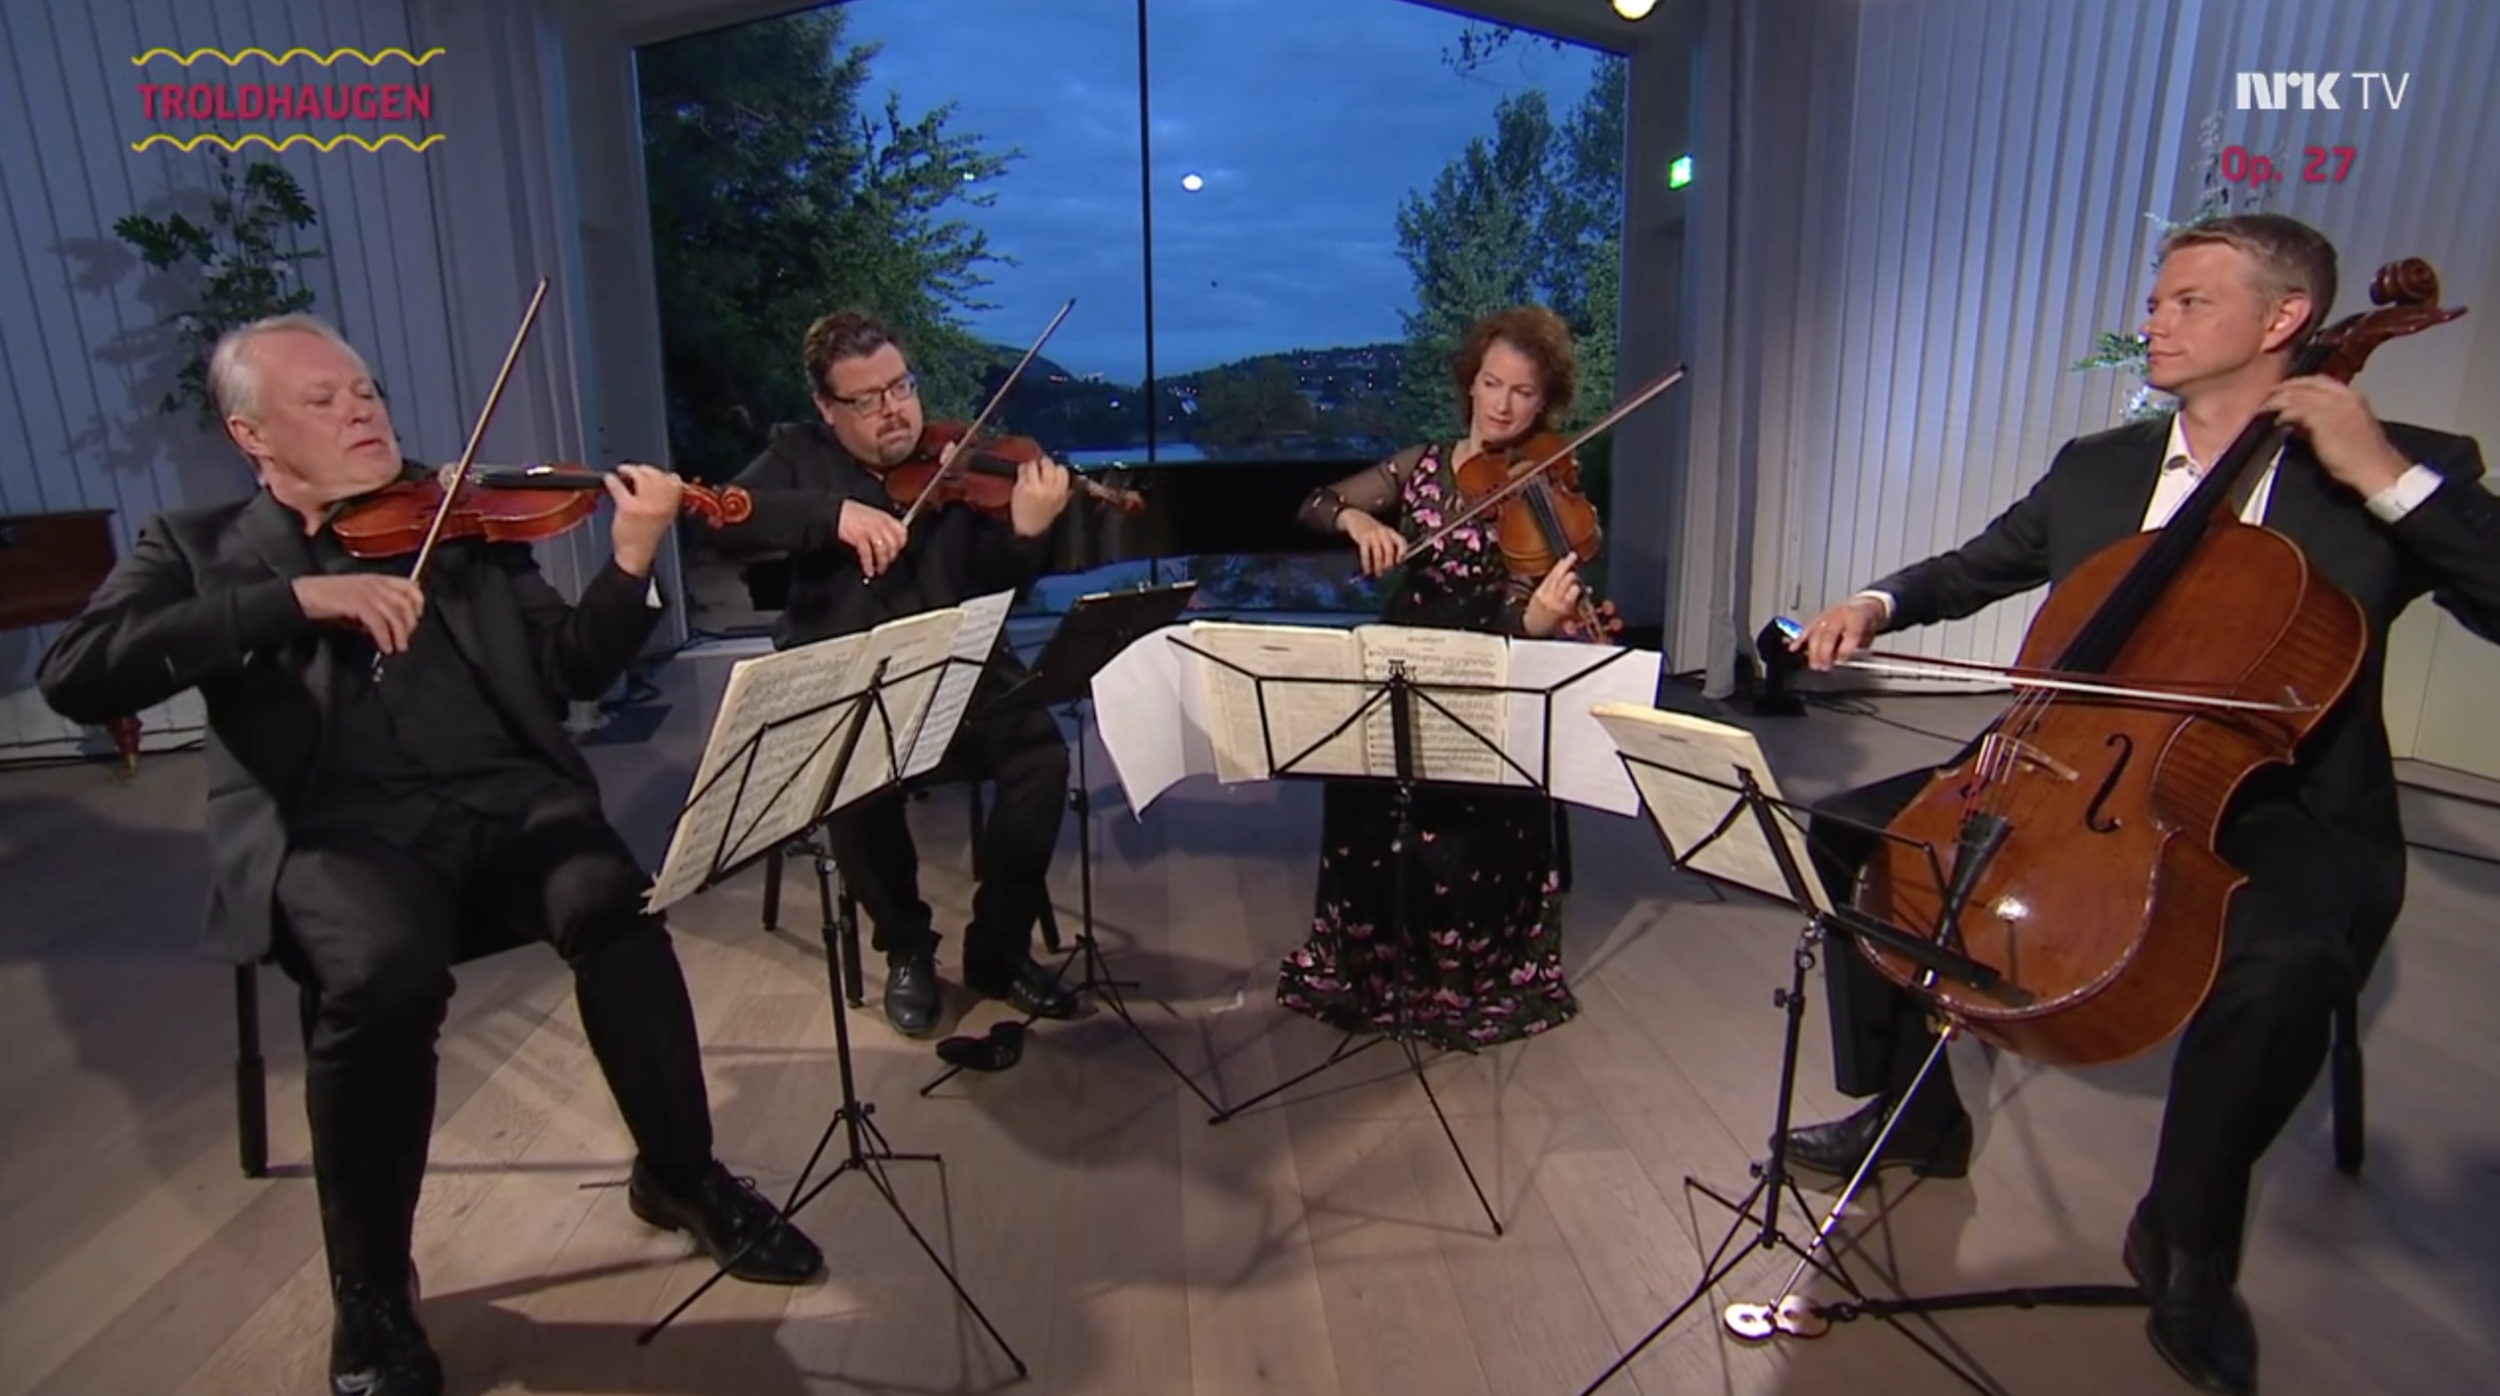 Click  to watch NRKs live recording of the Engegård Quartet performing Grieg´s string quartet op.27 at Troldhaugen, Bergen.  This recording was part of NRK's 'Grieg Minute by Minute', in which the complete works of Grieg were performed back to back in June 2018.